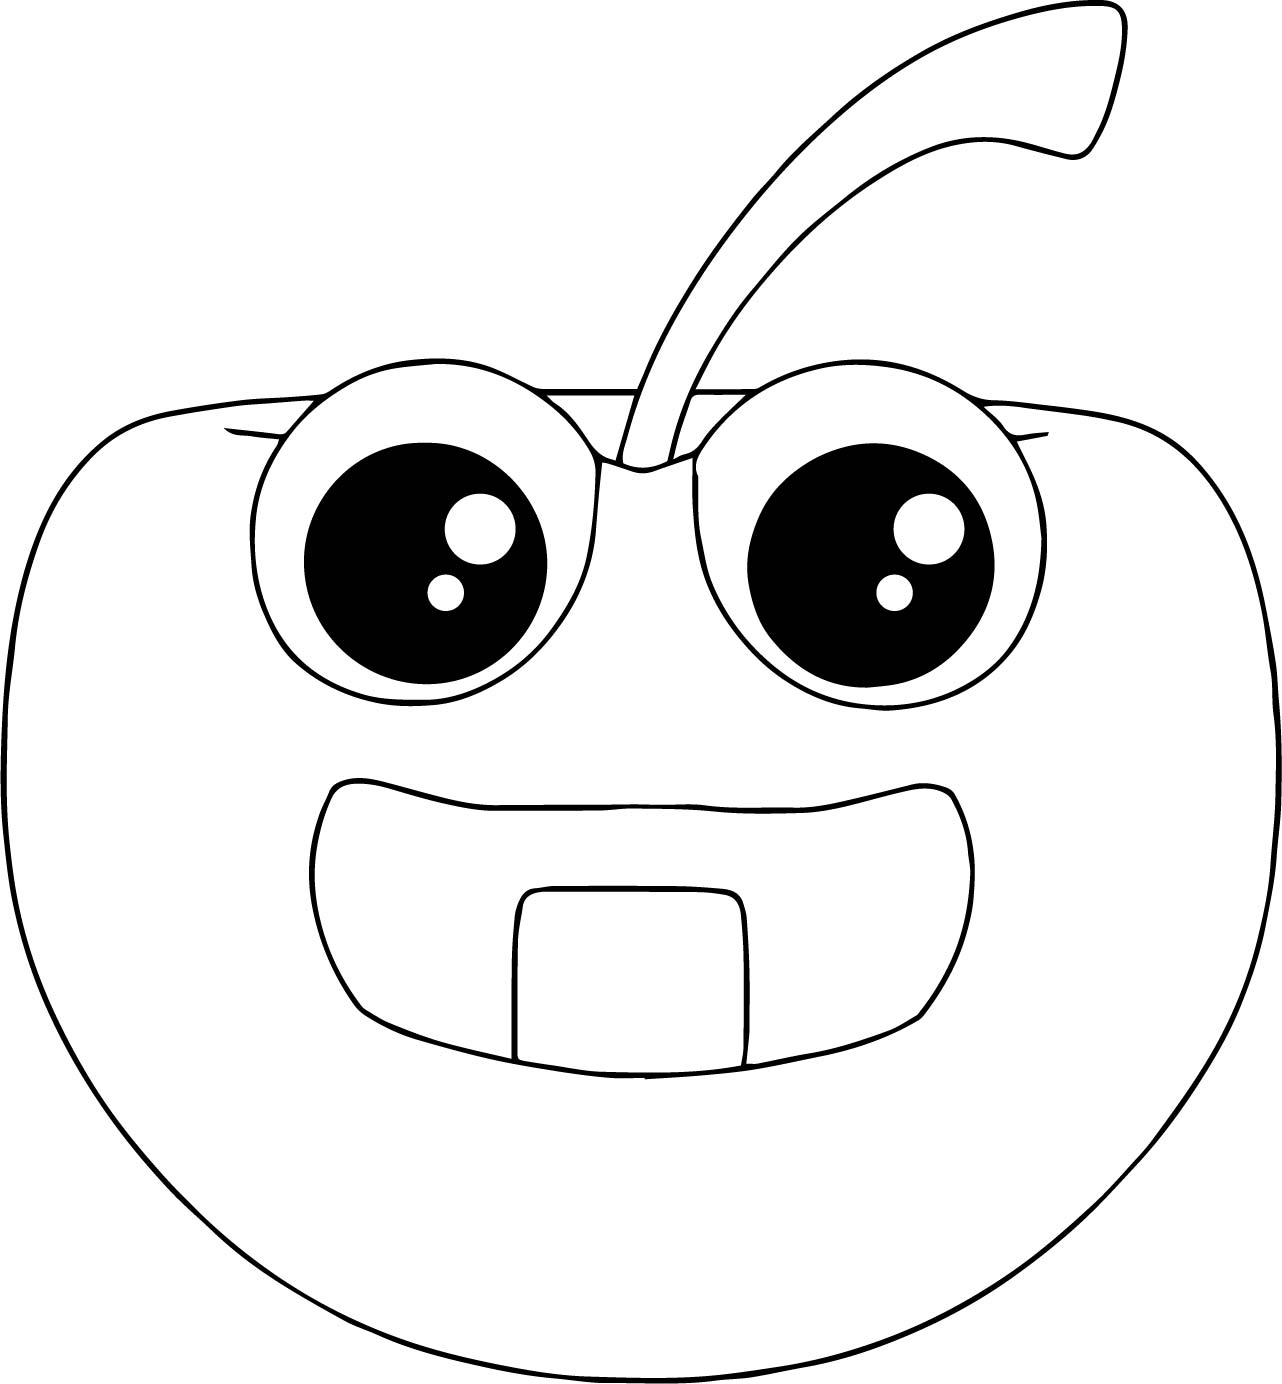 Cartoon Apple Coloring Pages : Baby cartoon apple coloring page wecoloringpage